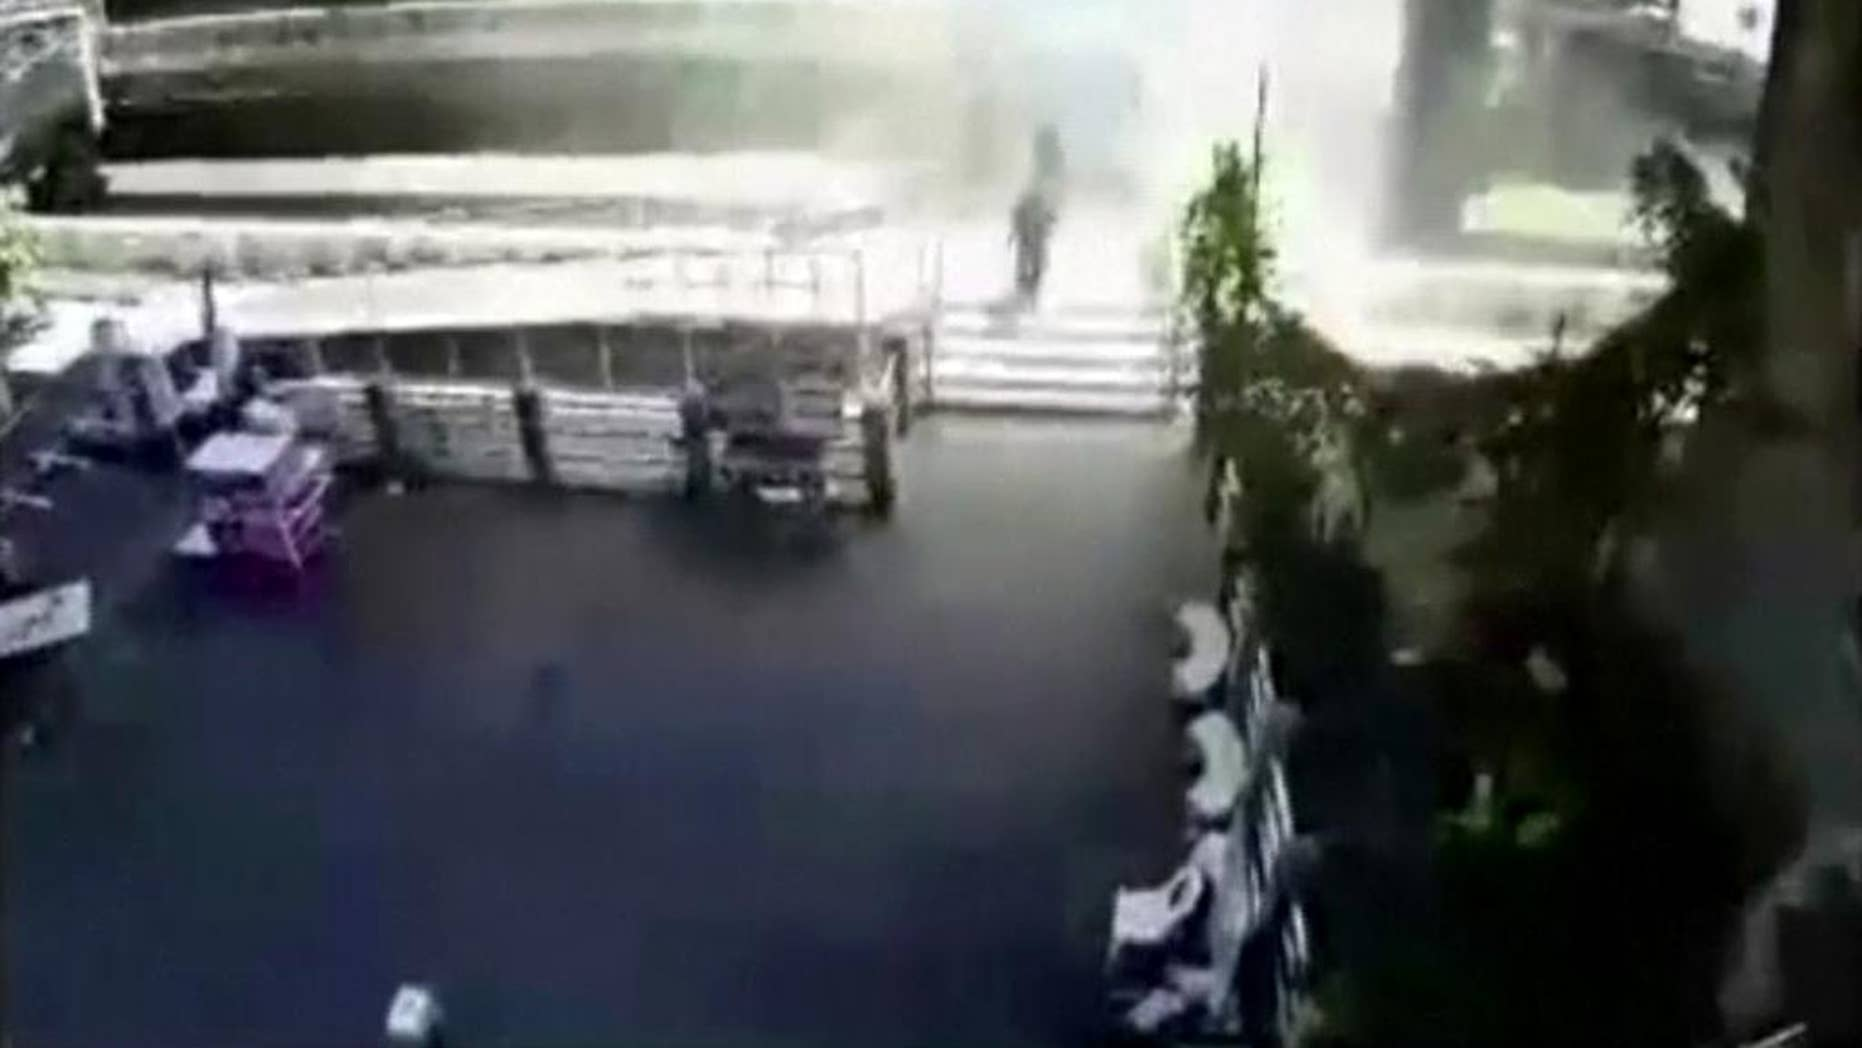 FILE - In this Tuesday, Aug. 18, 2015, photo, people run from an explosion at a ferry pier in Bangkok, Thailand. No one was hurt in Tuesday's blast, but police say the explosive device was thrown from a bridge and blew up after falling into the river below. A Thai court on Thursday, Aug. 27, 2015,  issued an arrest warrant for an unnamed suspect in the riverside blast. (Photo via AP)